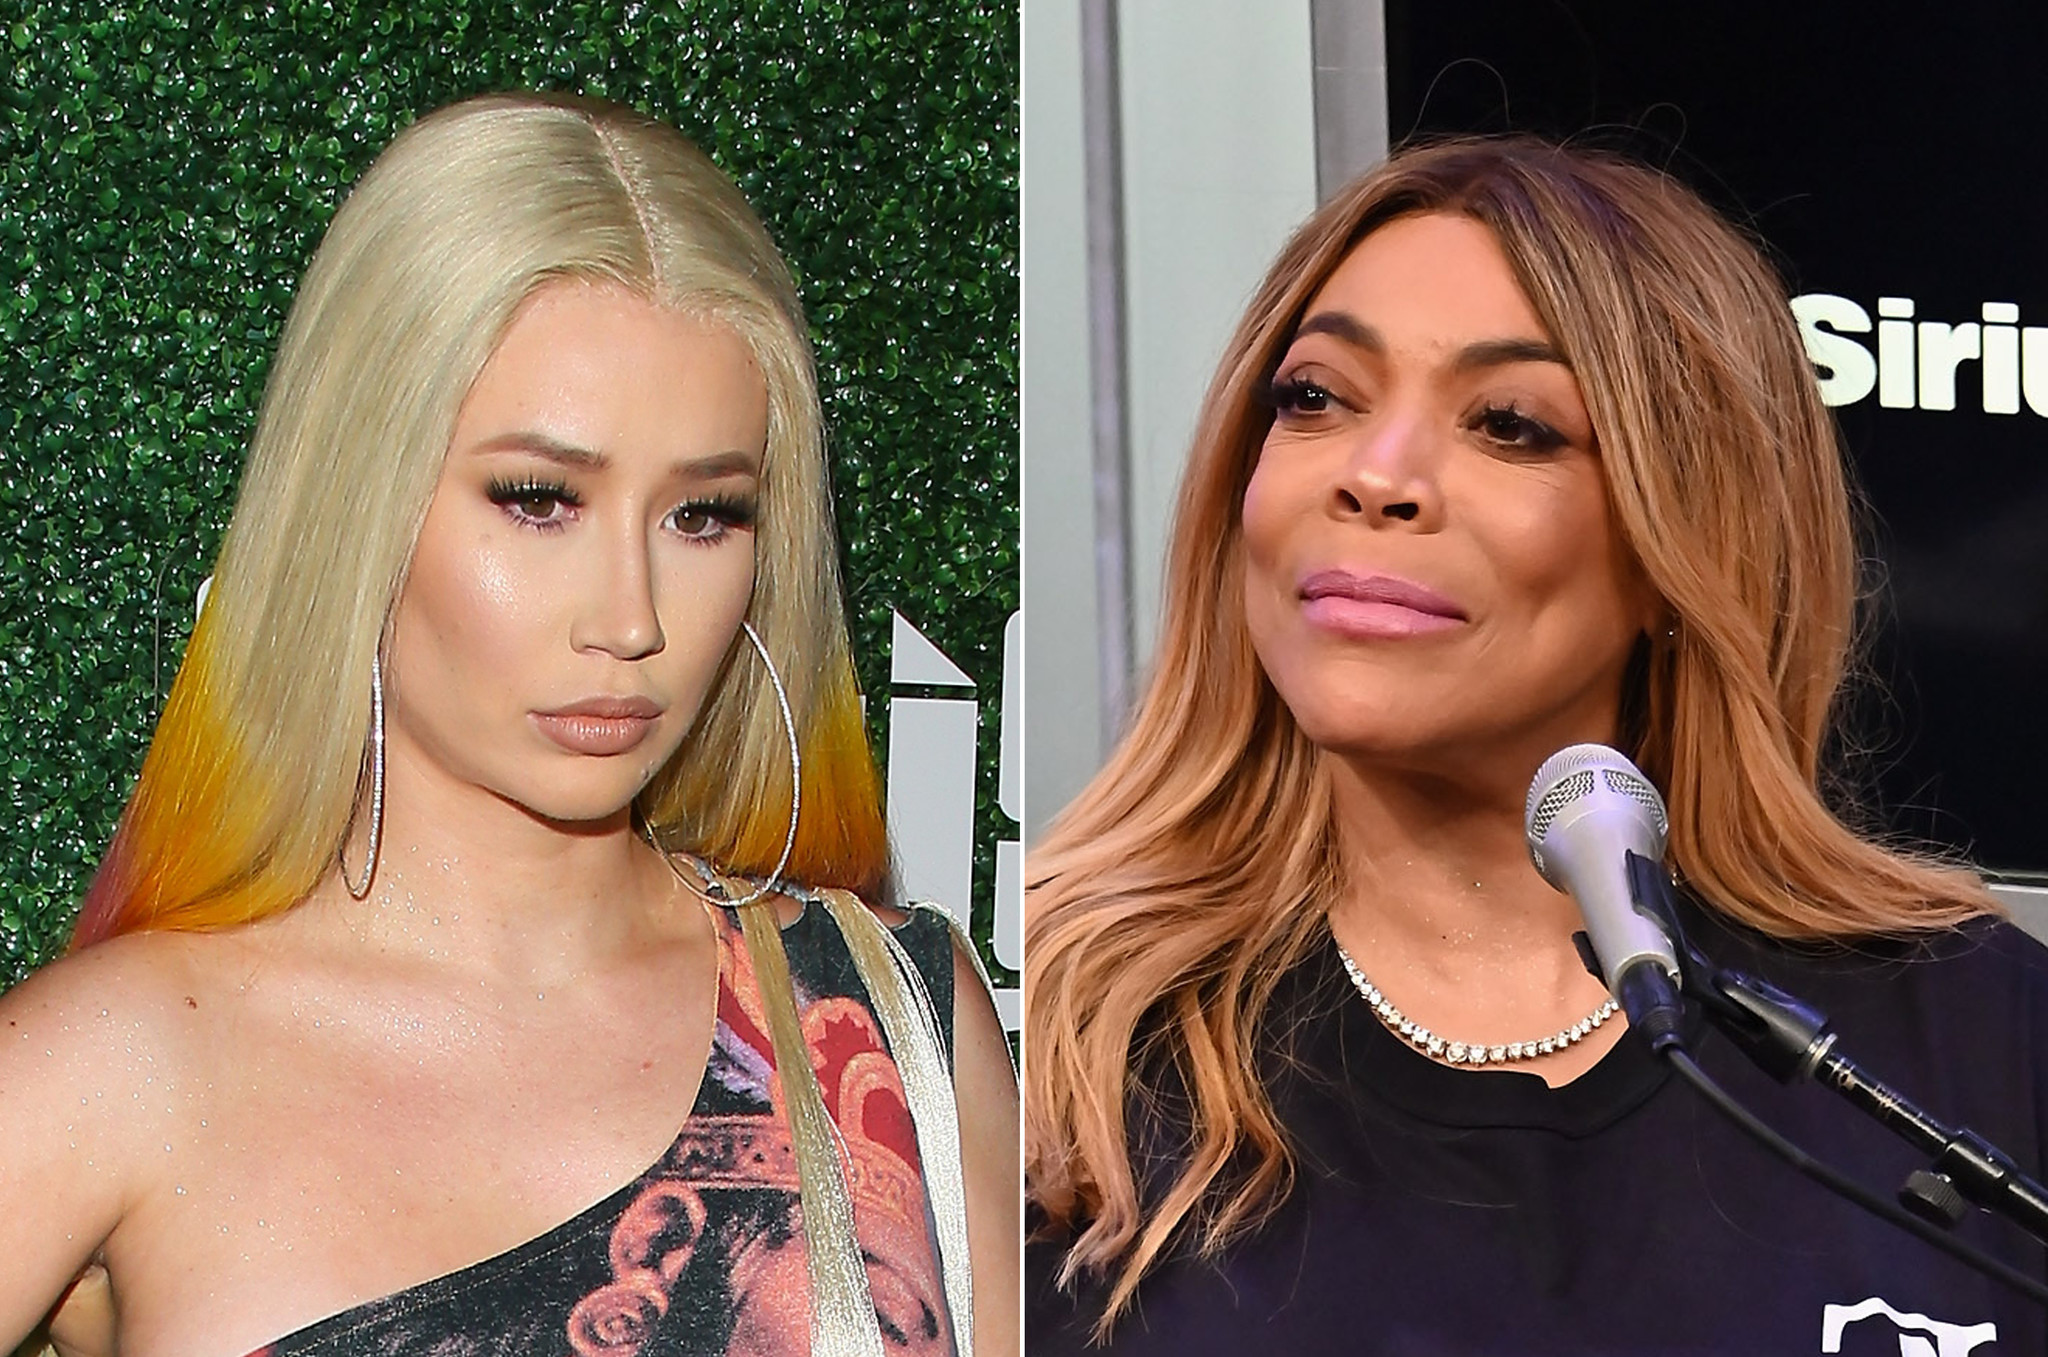 Iggy Azalea strikes back at Wendy Williams' shade throwing, calls her a 'crack head'